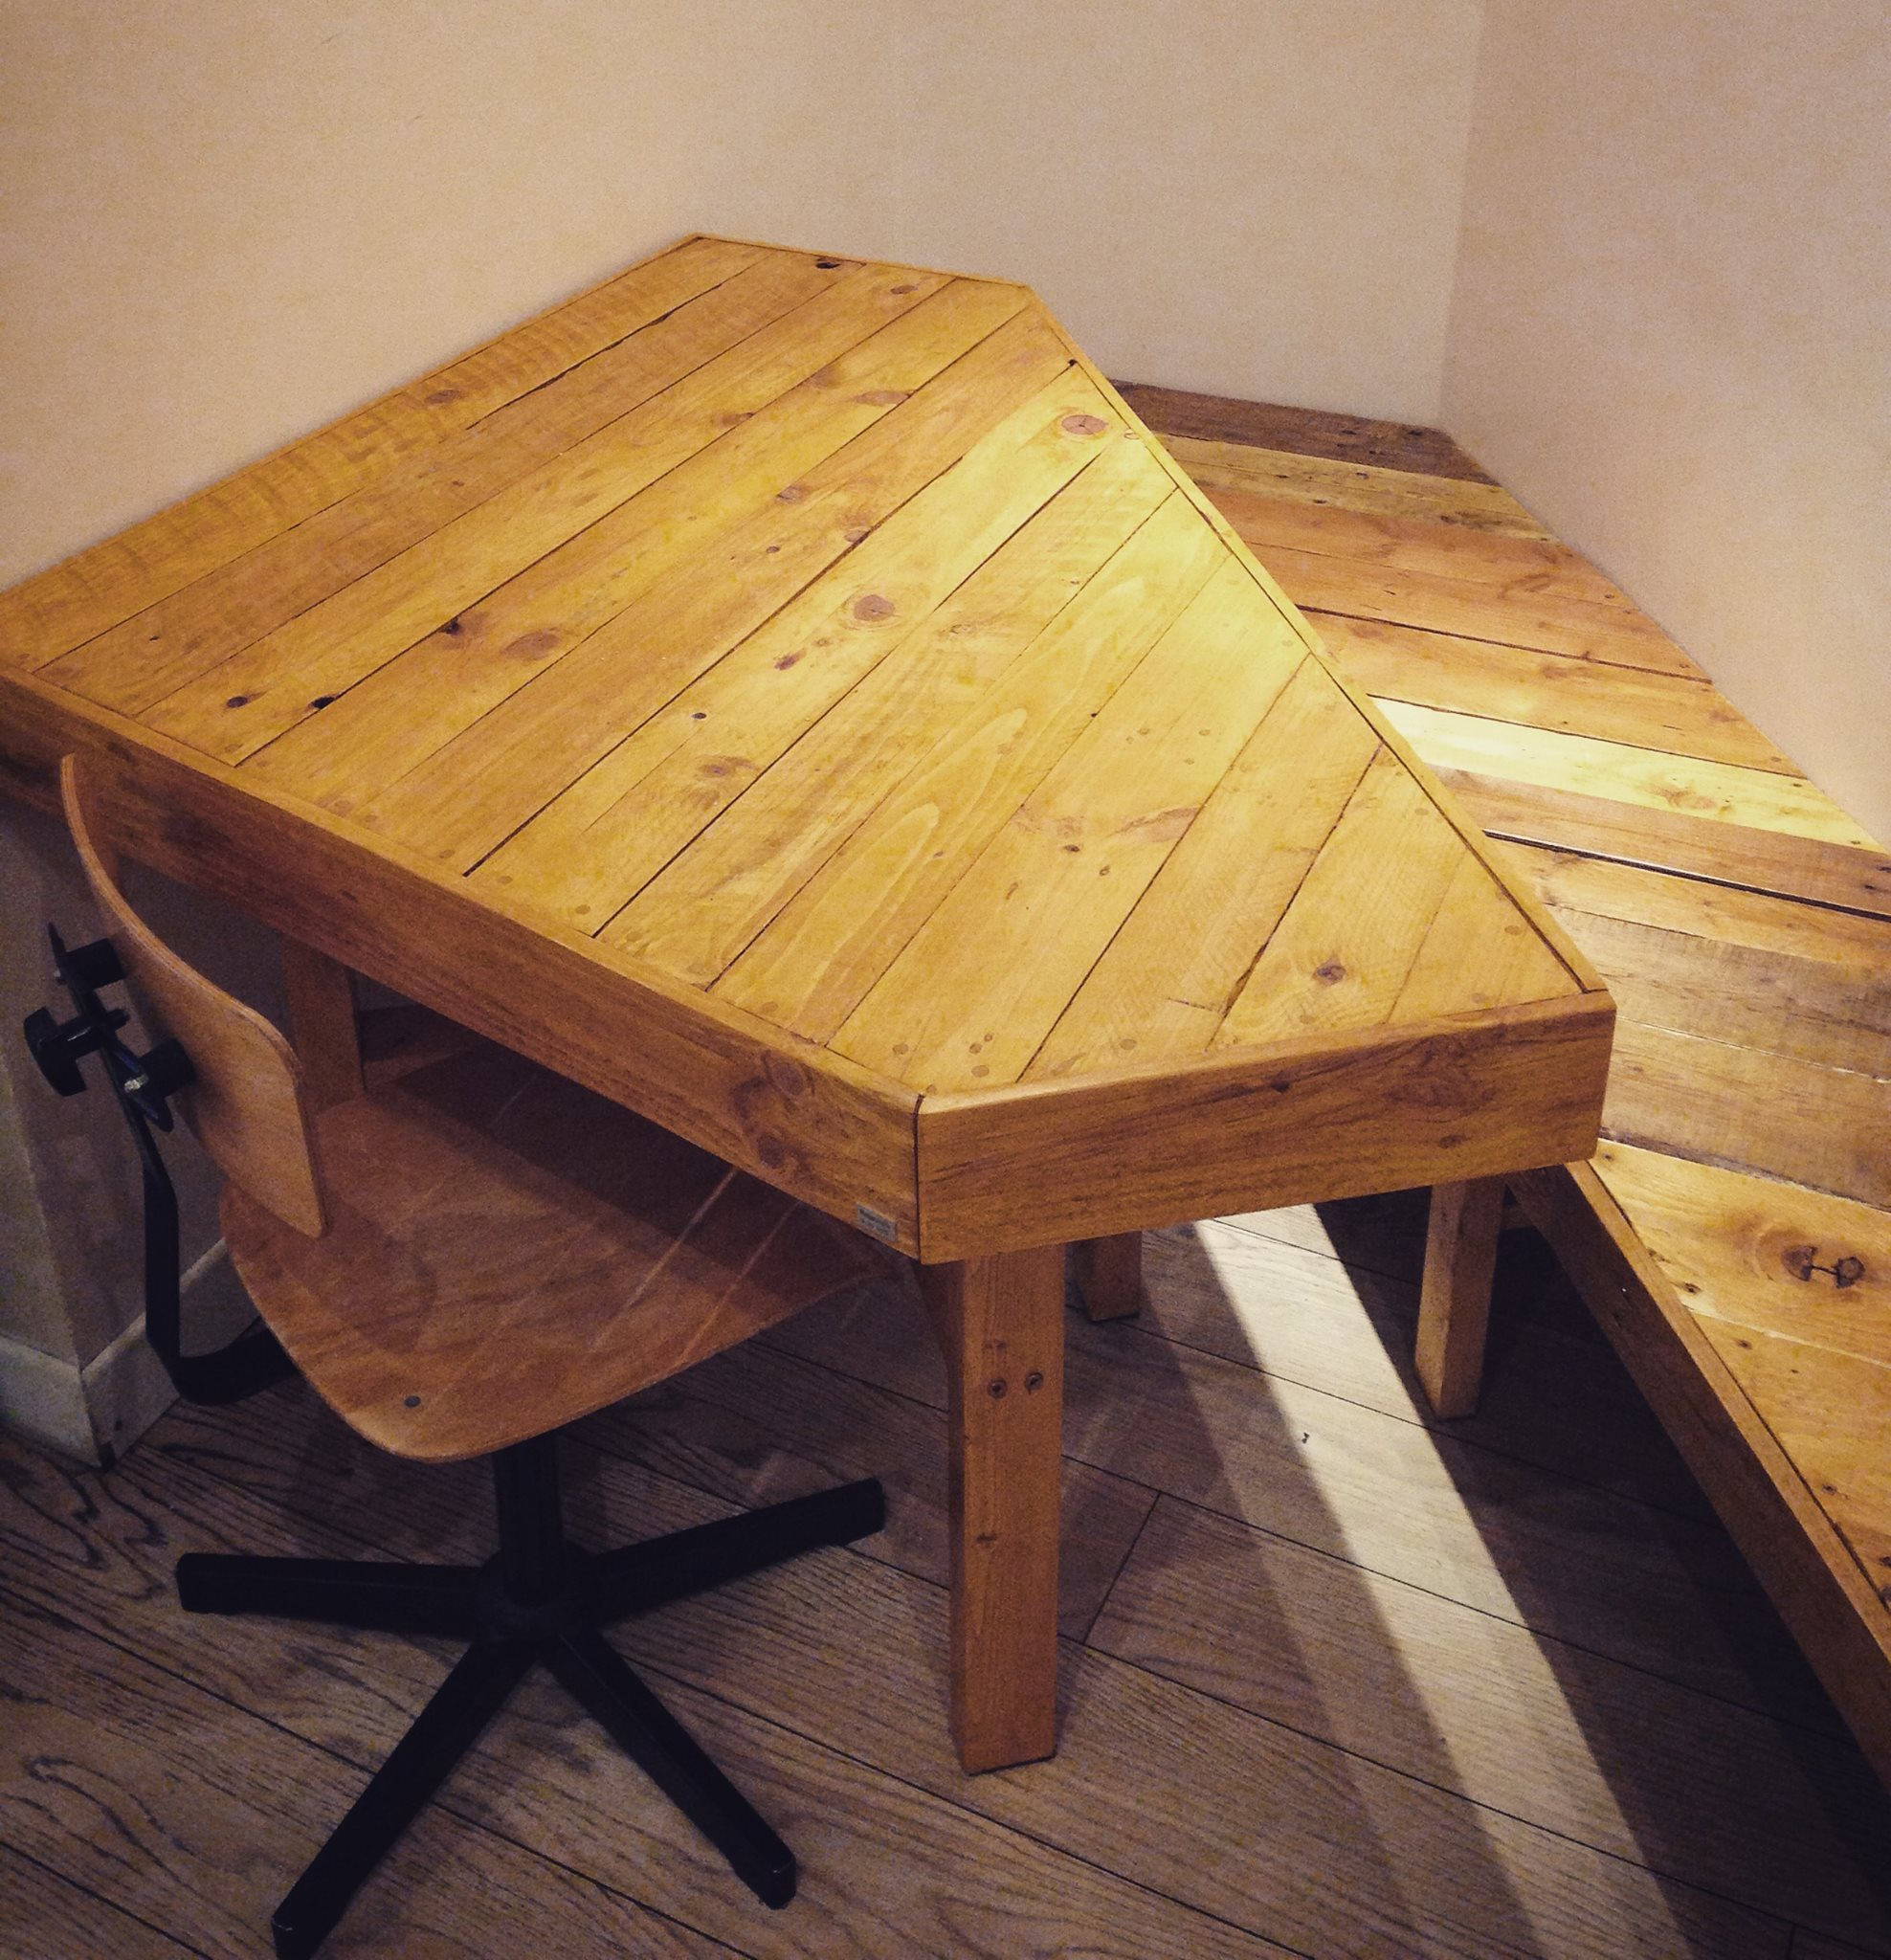 Table et banc en palette